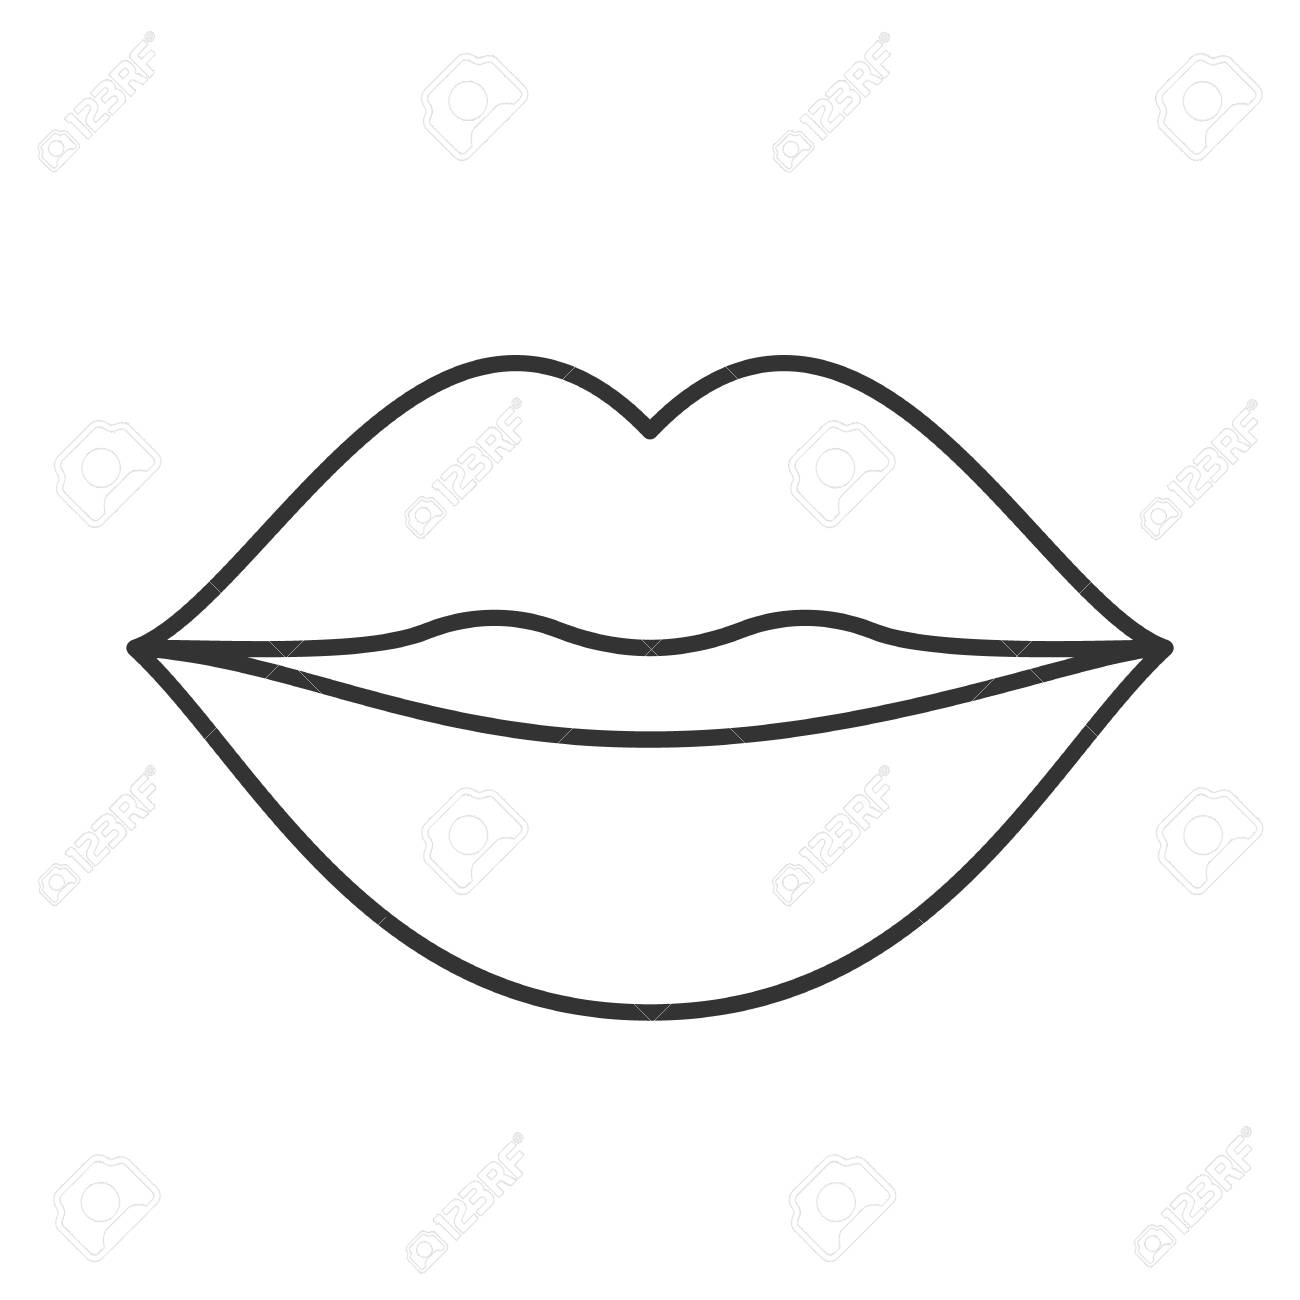 kiss linear icon thin line illustration woman s lips contour